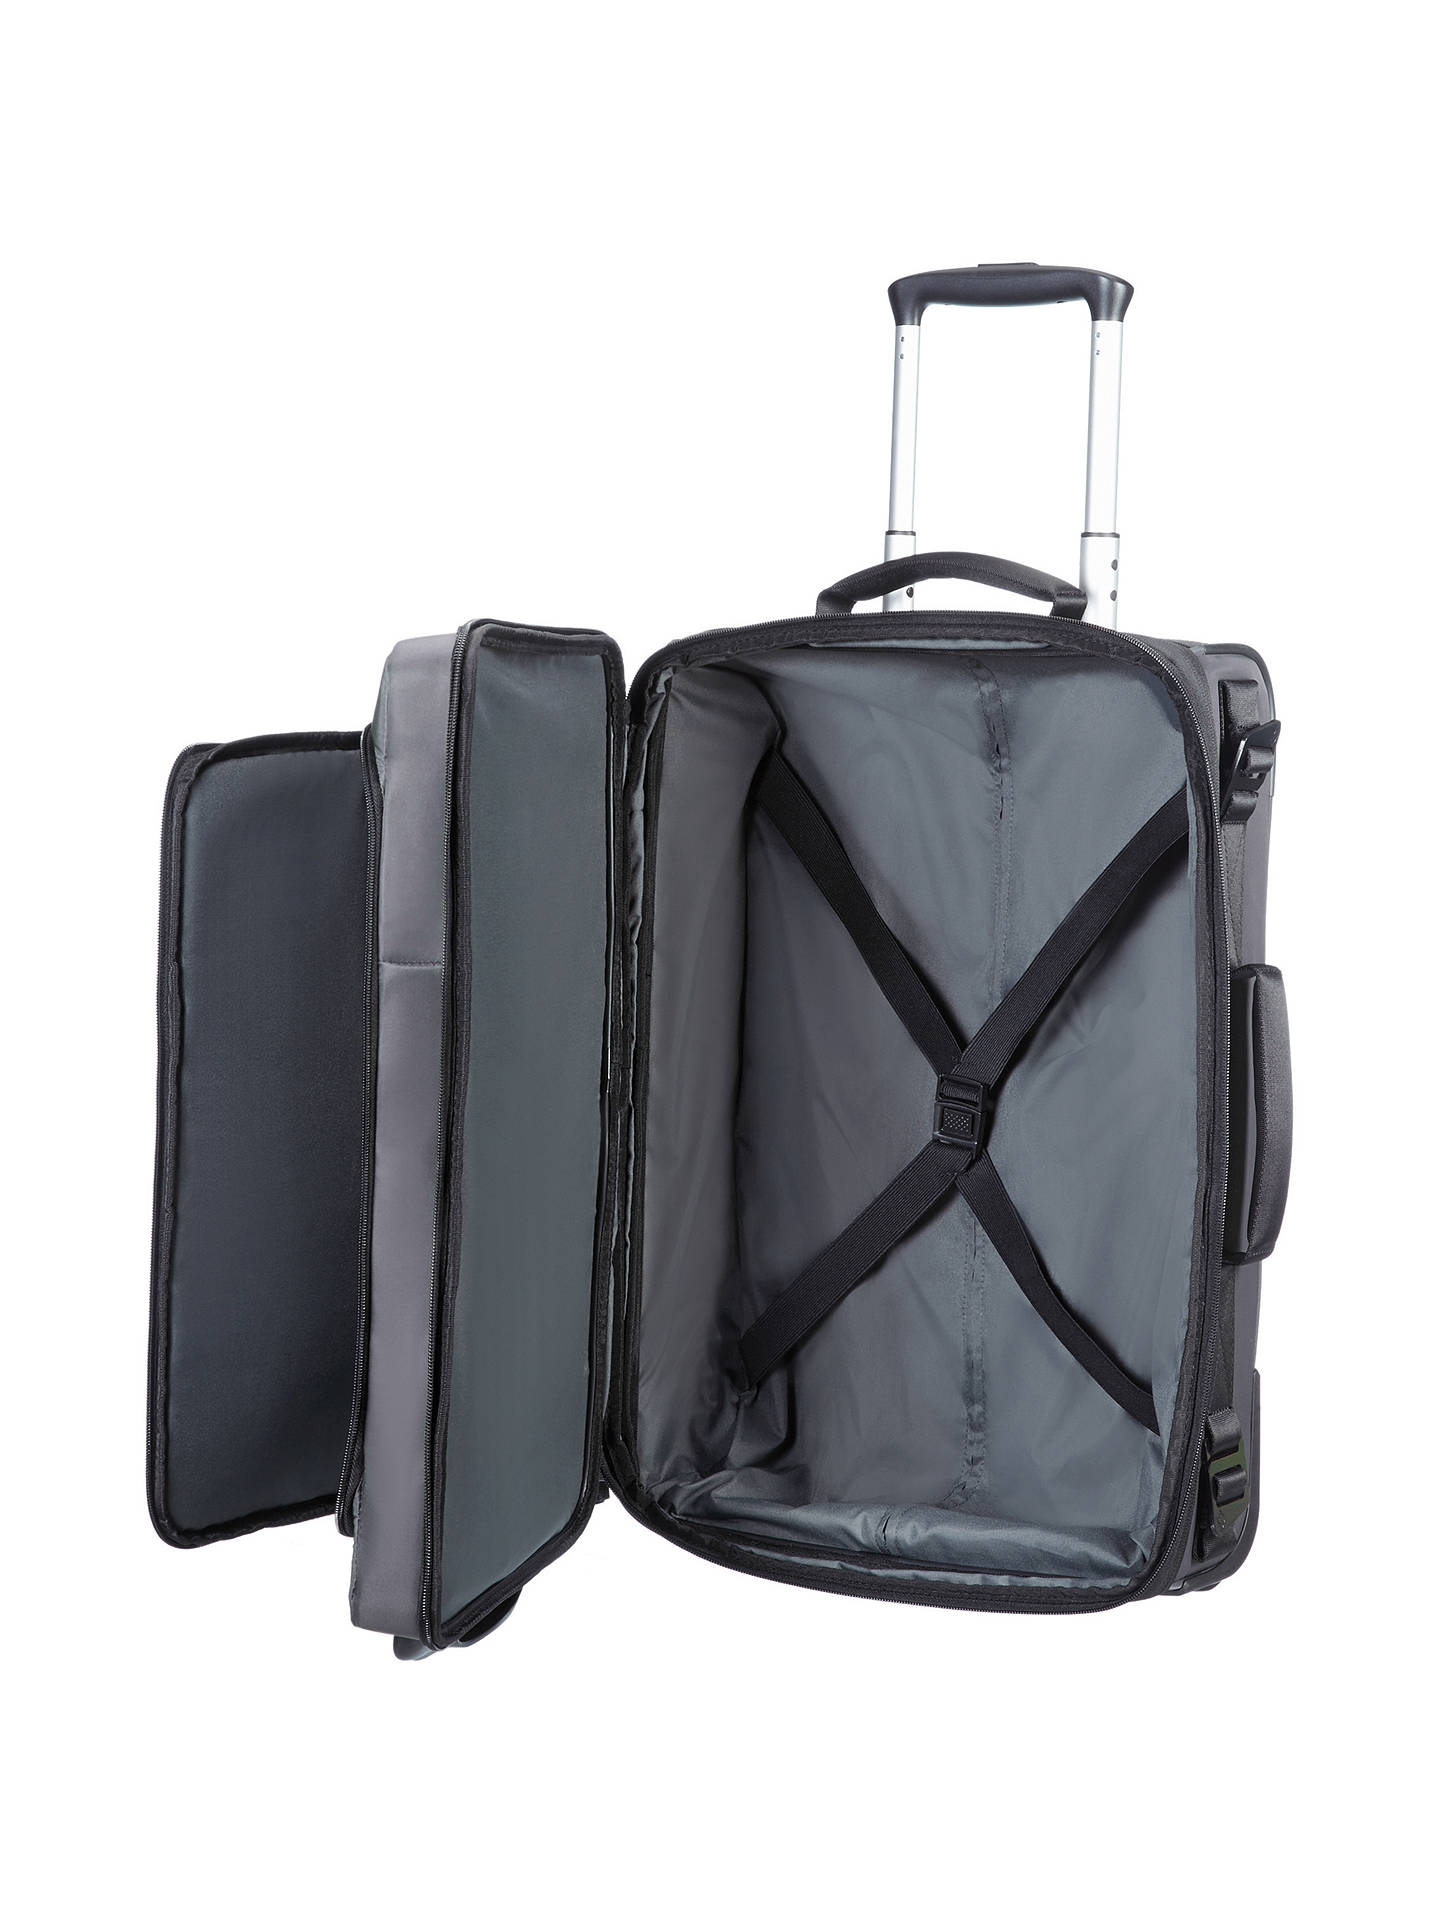 BuySamsonite City Vibe 2-Wheel 55cm Laptop Cabin Suitcase, Grey Online at johnlewis.com